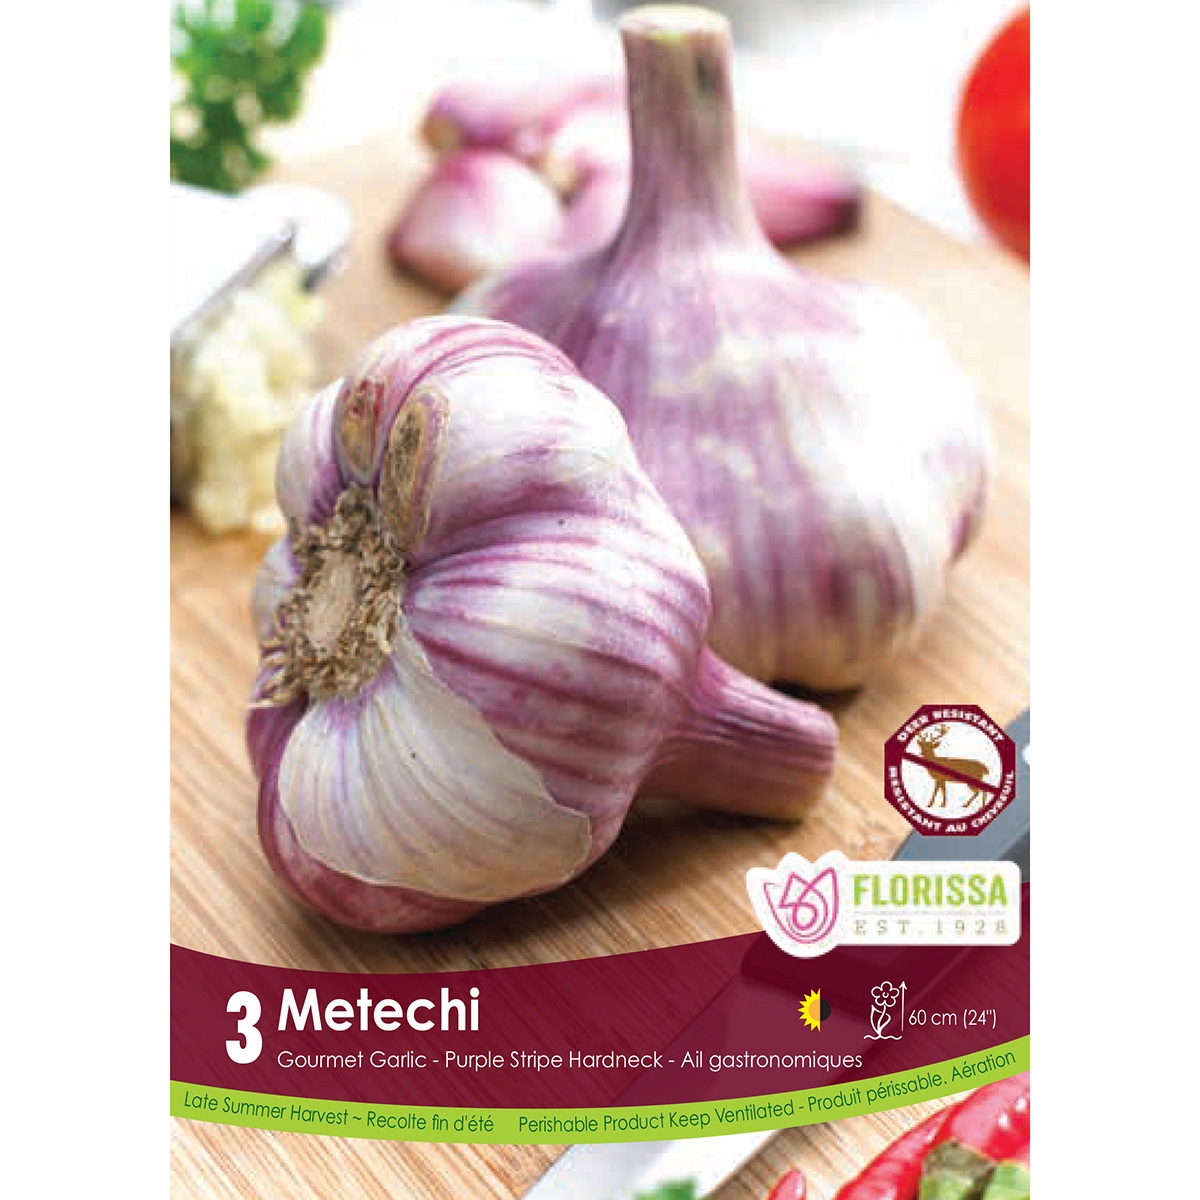 Garlic 'Metechi' Bulbs